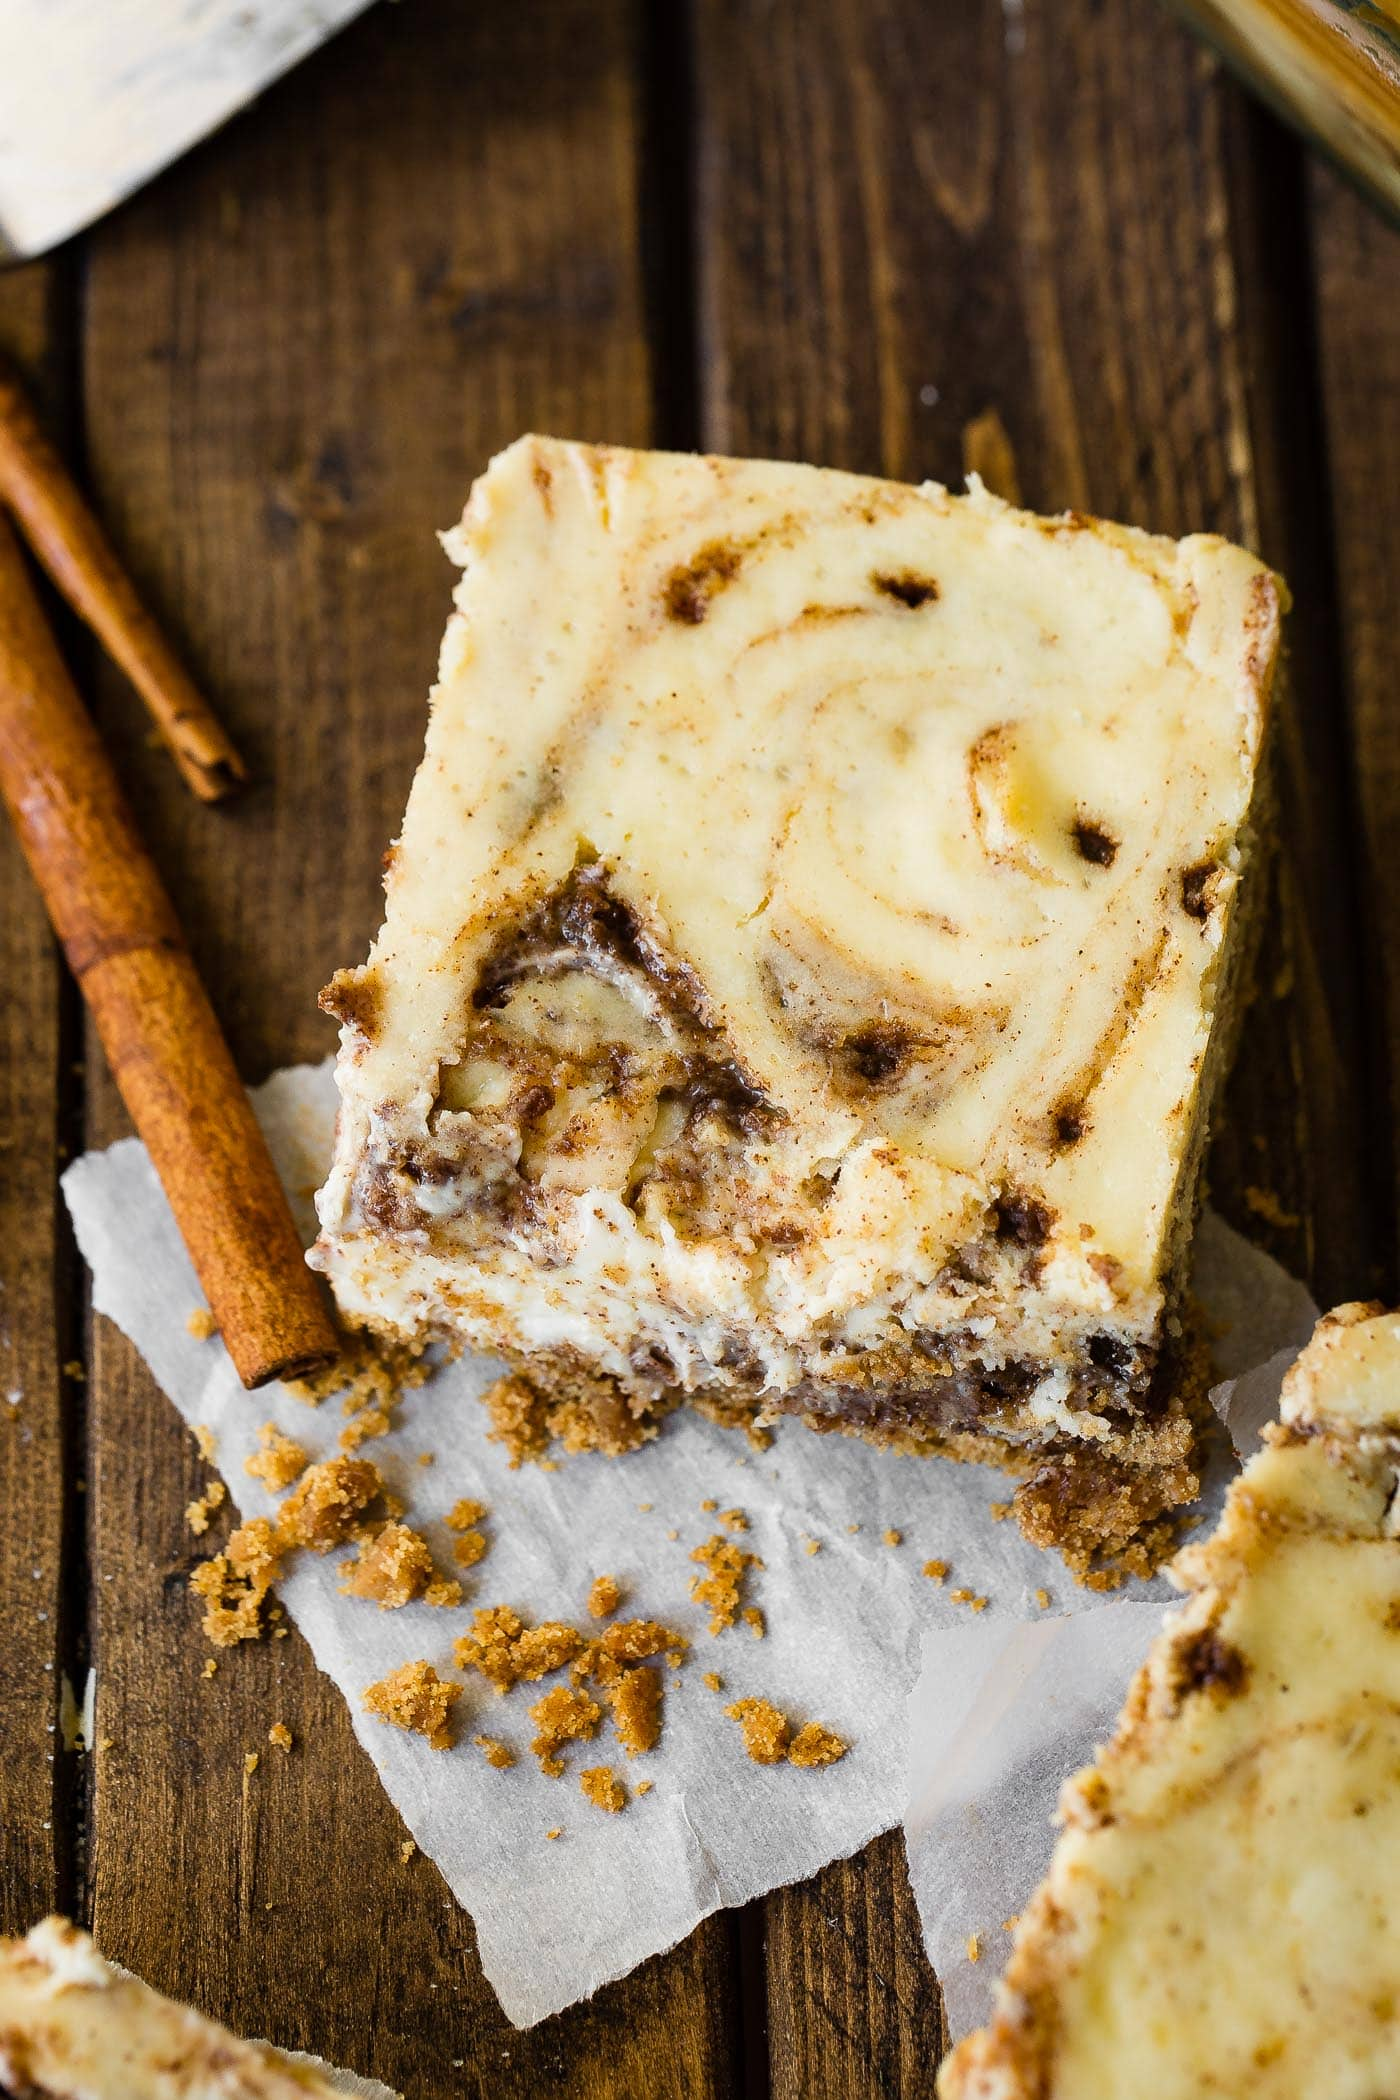 A photo of a cinnamon roll cheesecake bar sitting on a wooden surface with cinnamon sticks sitting next to it.